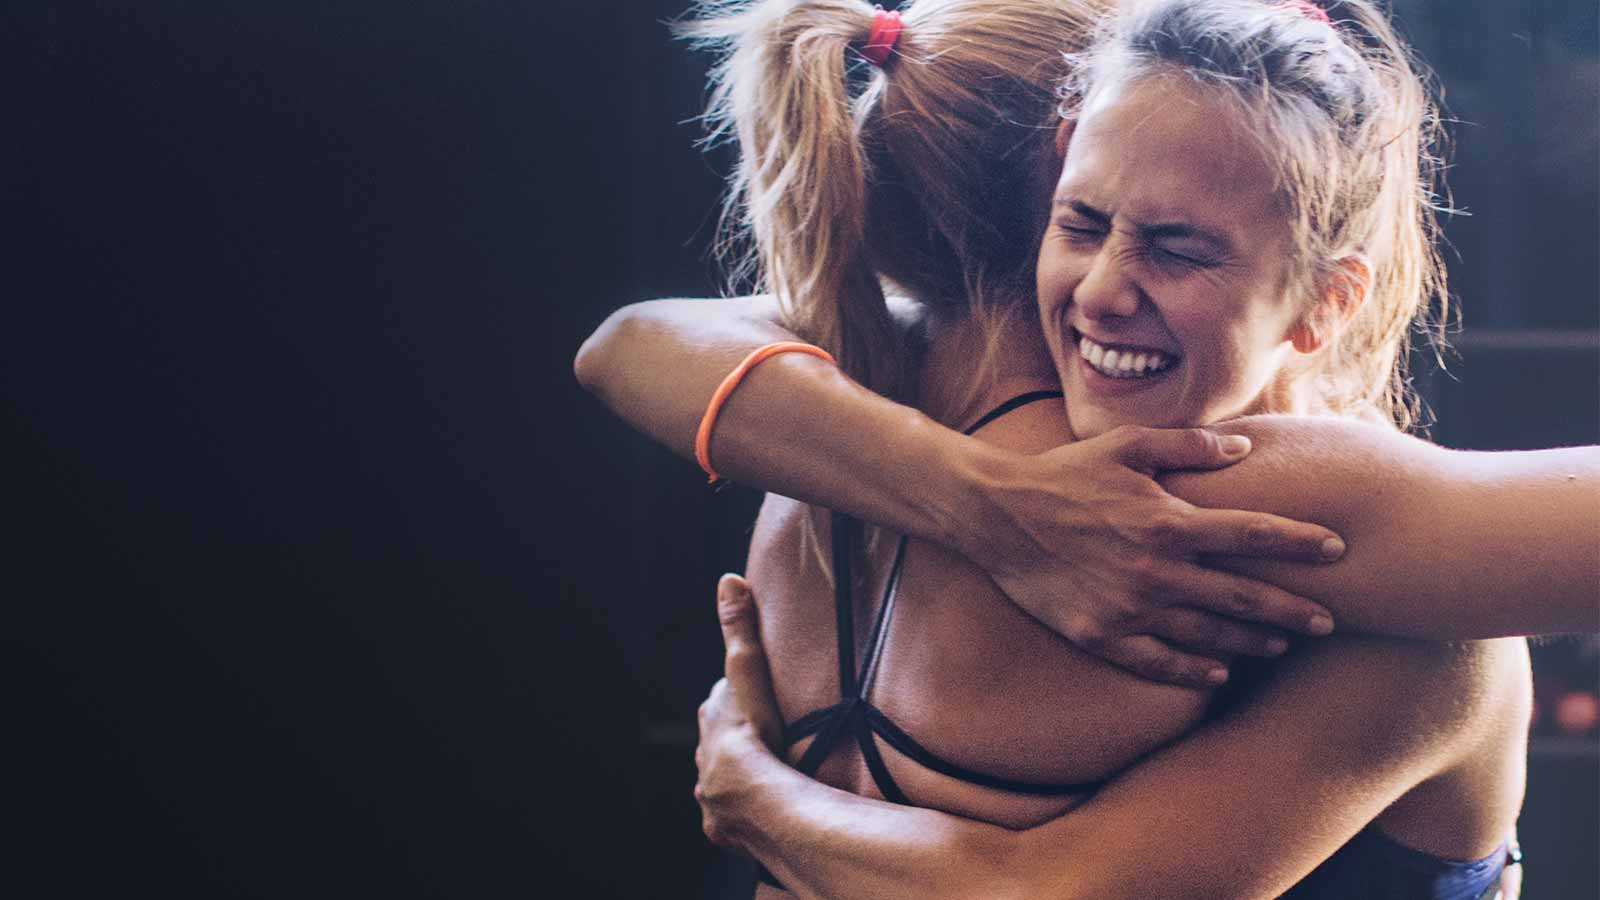 Two happy athletic young women smiling and hugging